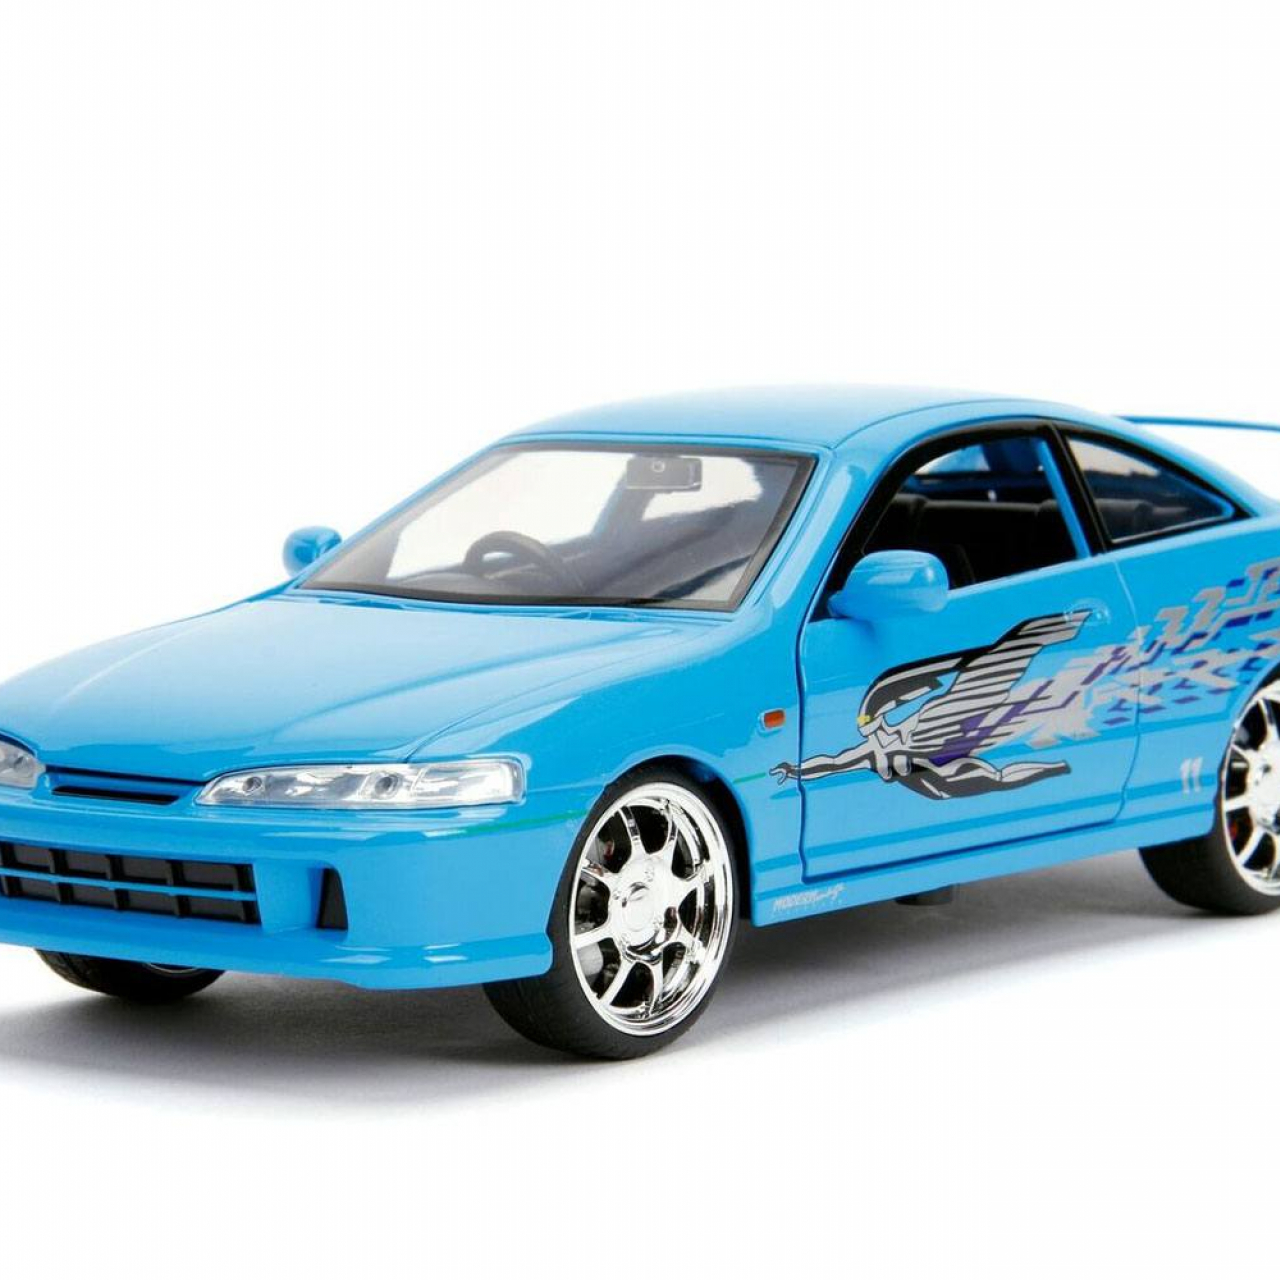 Fast & Furious 8 Diecast Model 1/24 Mia's 1995 Honda Integra Type R